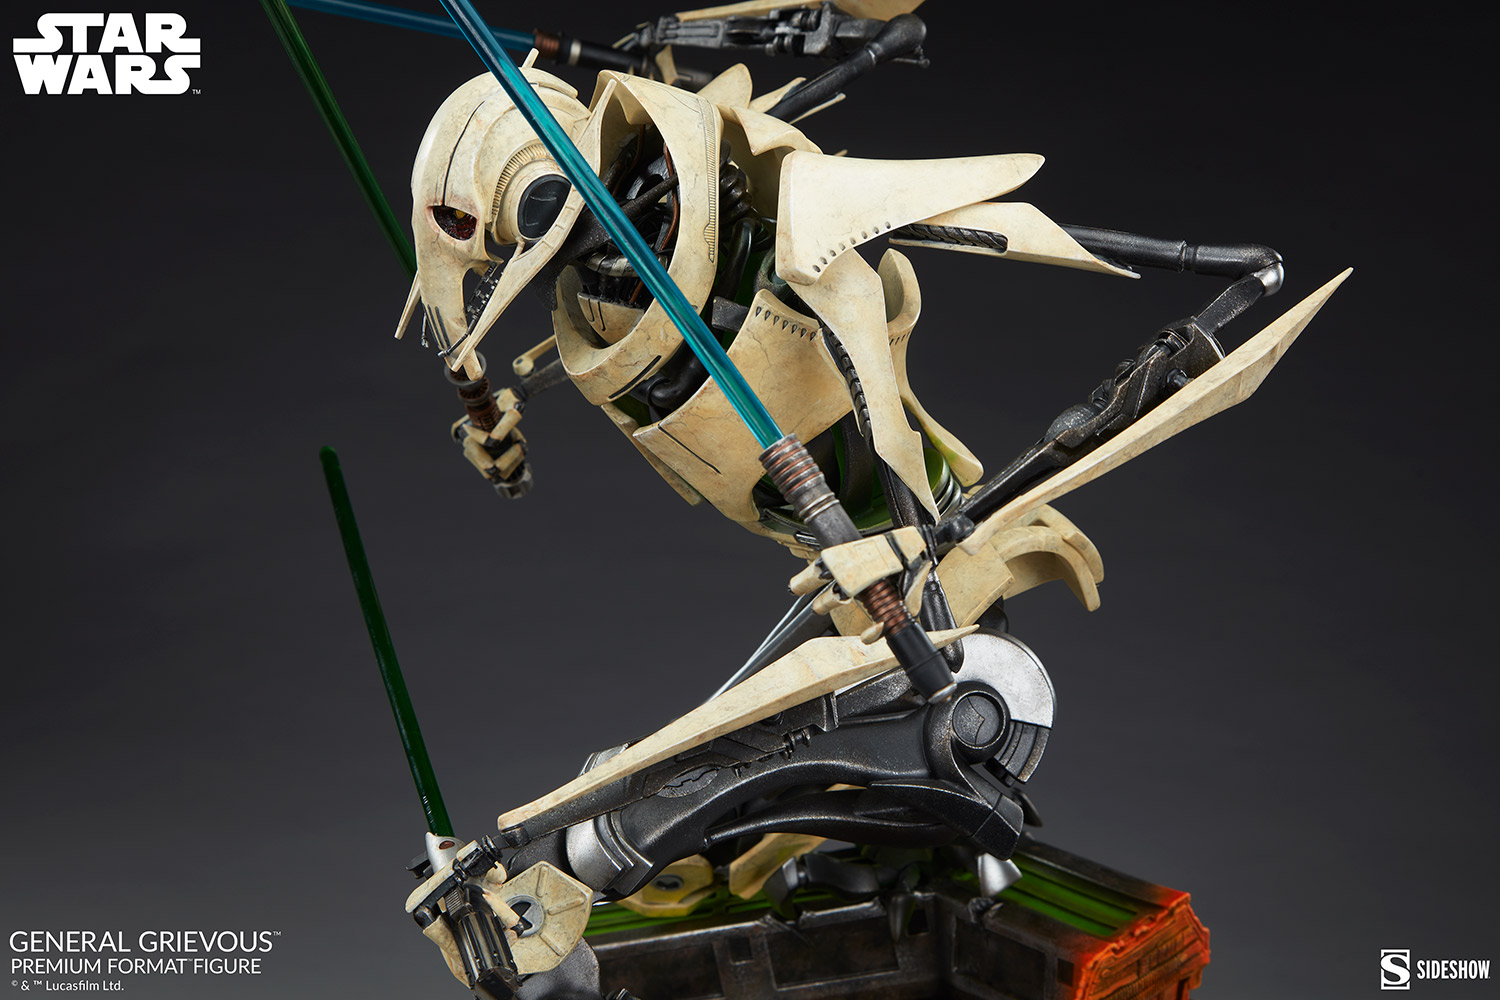 Star Wars: Revenge of the Sith : General Grievous Premium Format Figure General-grievous_star-wars_gallery_6155e6855b2c8